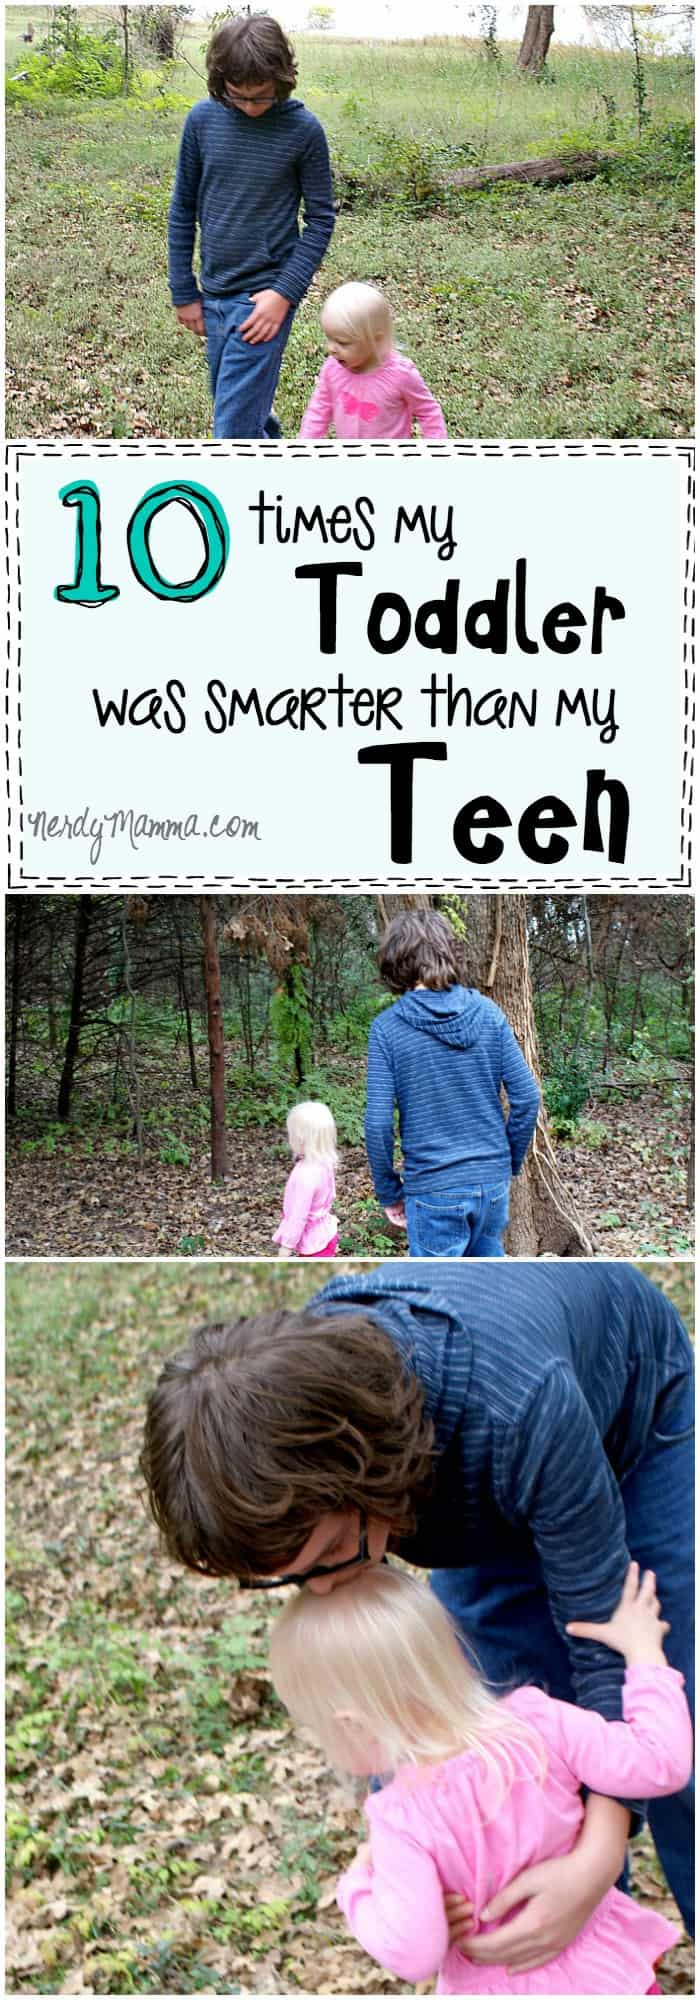 So, I've been studying them and these are the best (funniest) 10 Times My Toddler was Smarter Than my Teen.